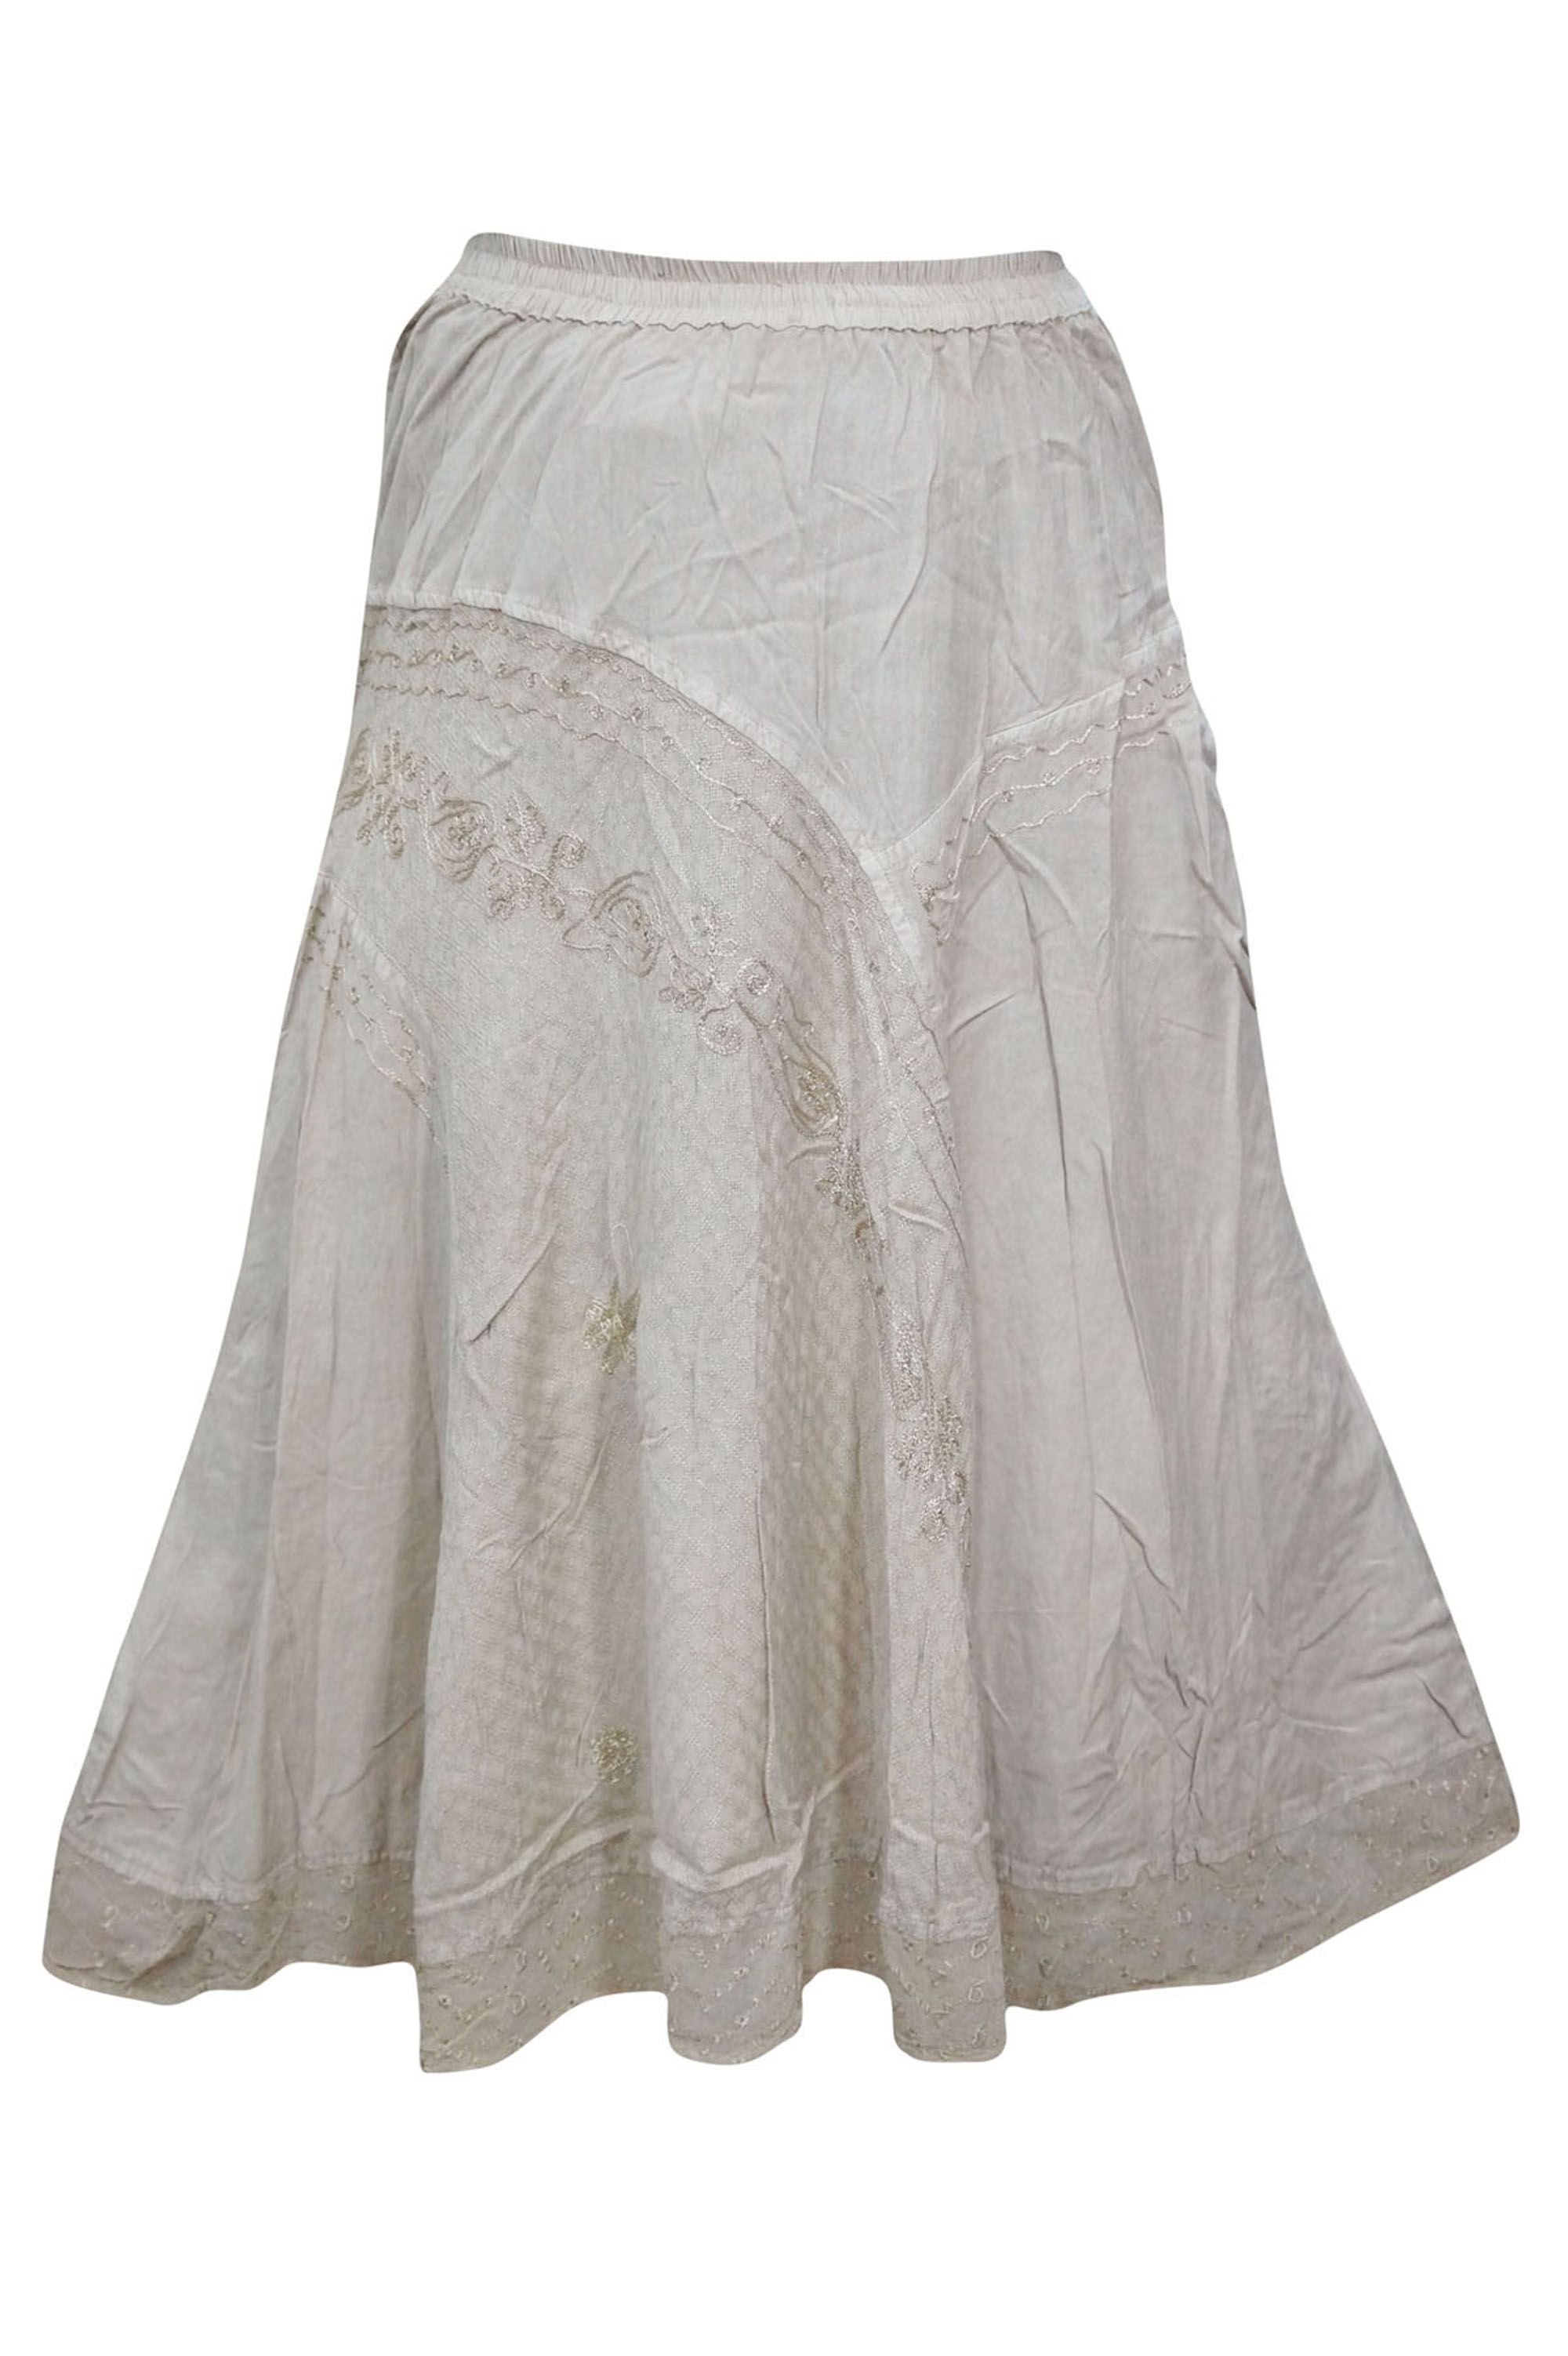 c6891047d Mogul Womens Long Skirt Beige Embroidered Rayon Gypsy Hippie Chic Boho  A-Line Long Skirts S/M#Skirt, #Beige, #Embroidered